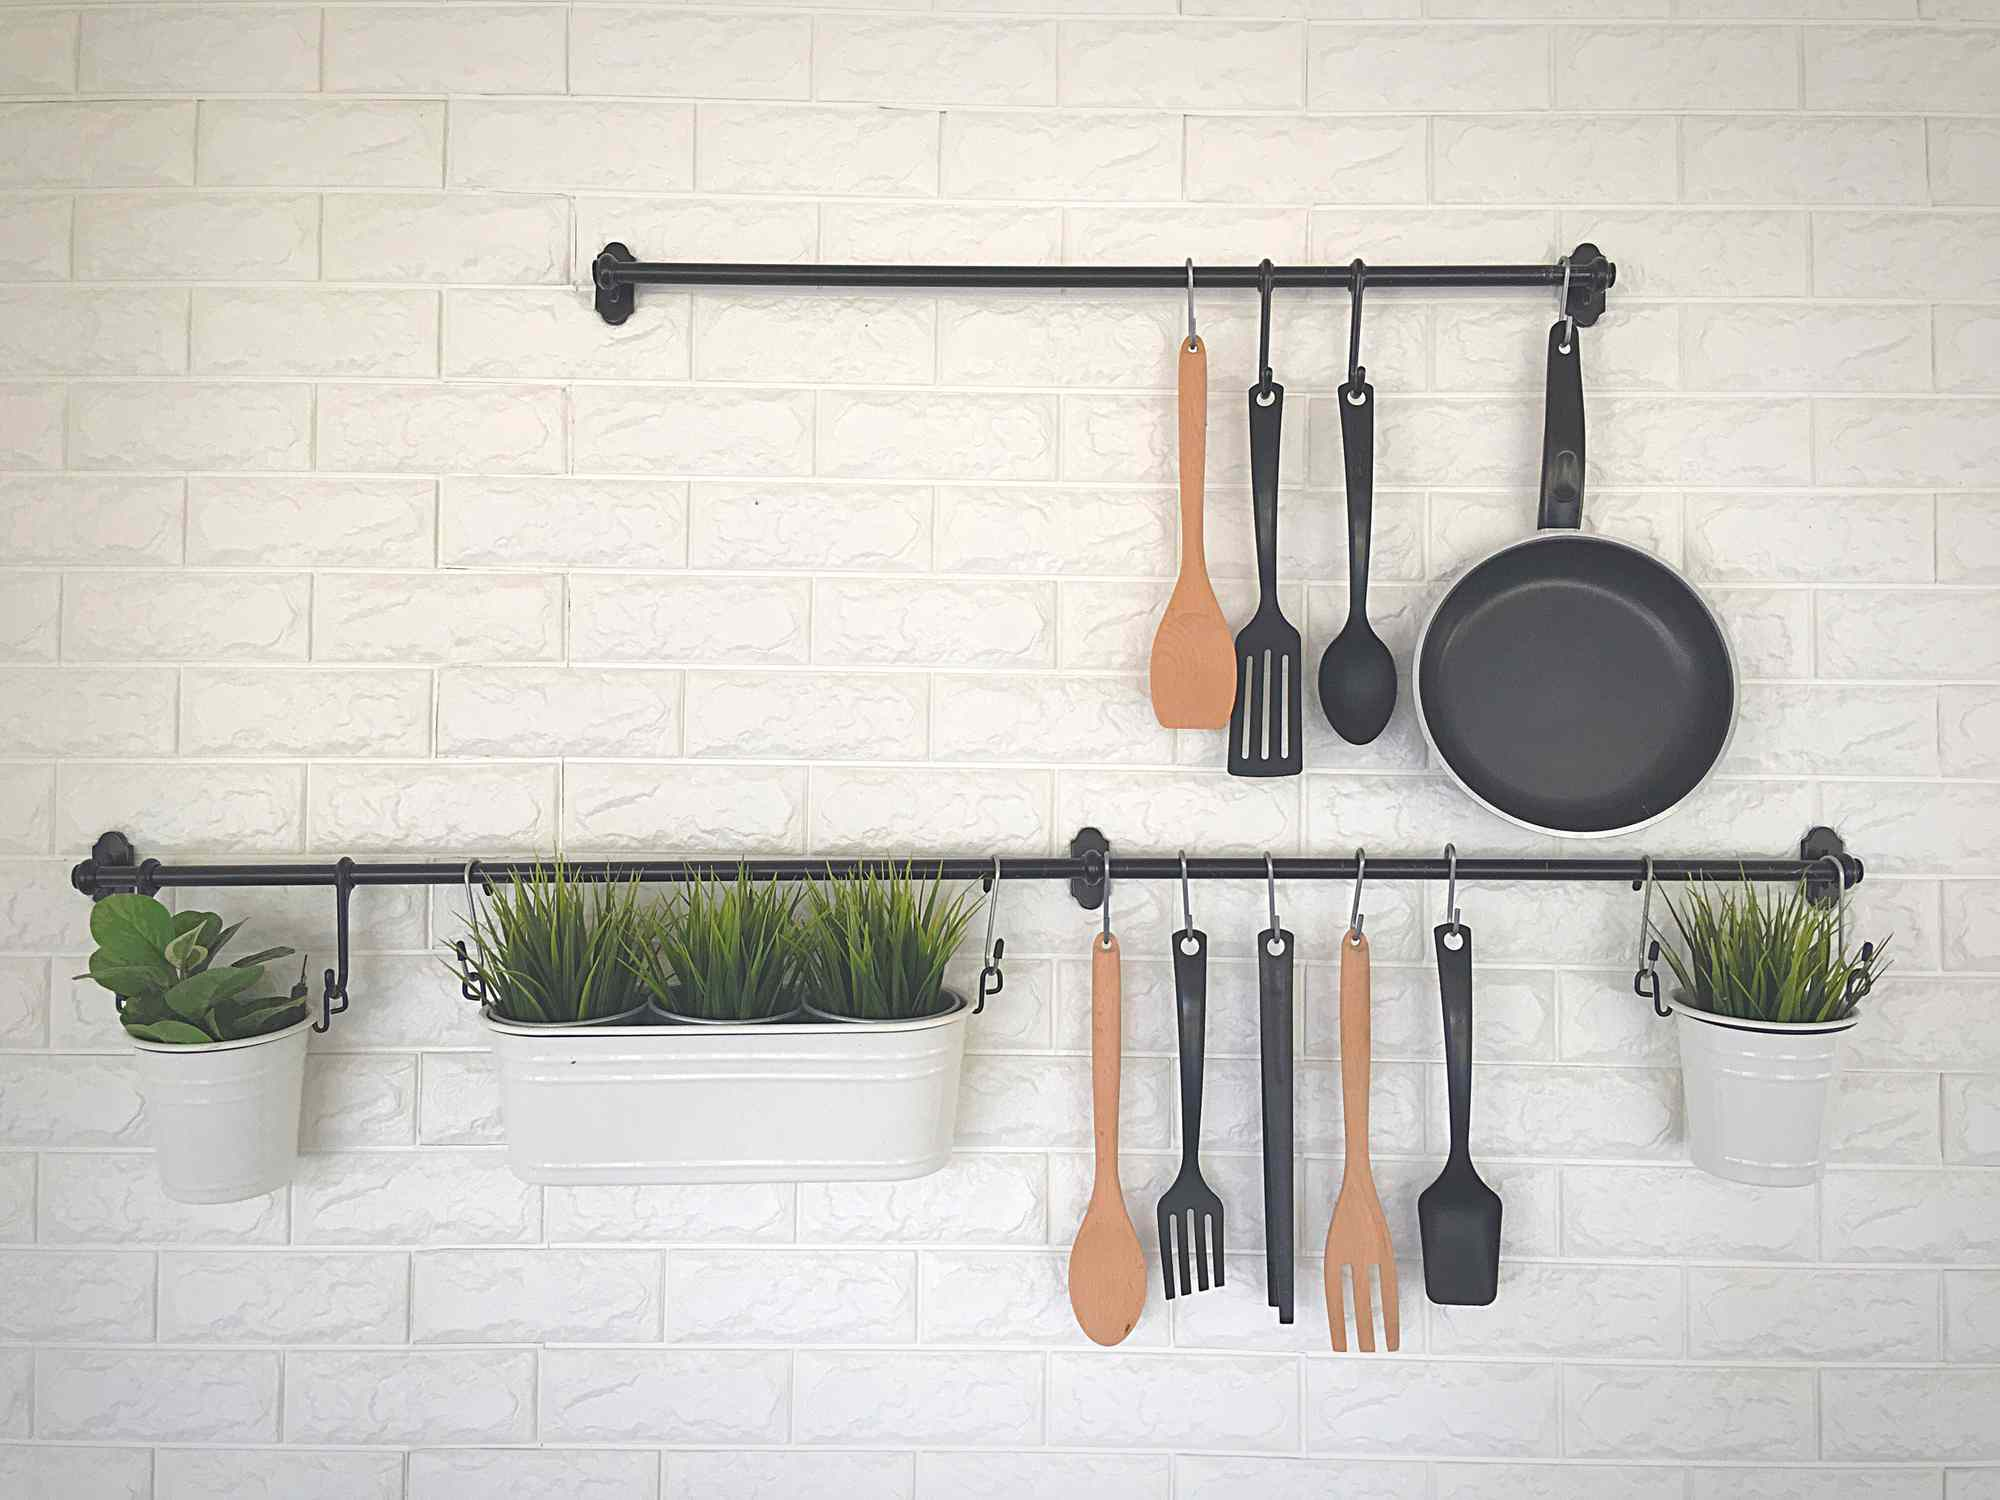 Kitchen utensils and potted greenery hanging from towel rods.